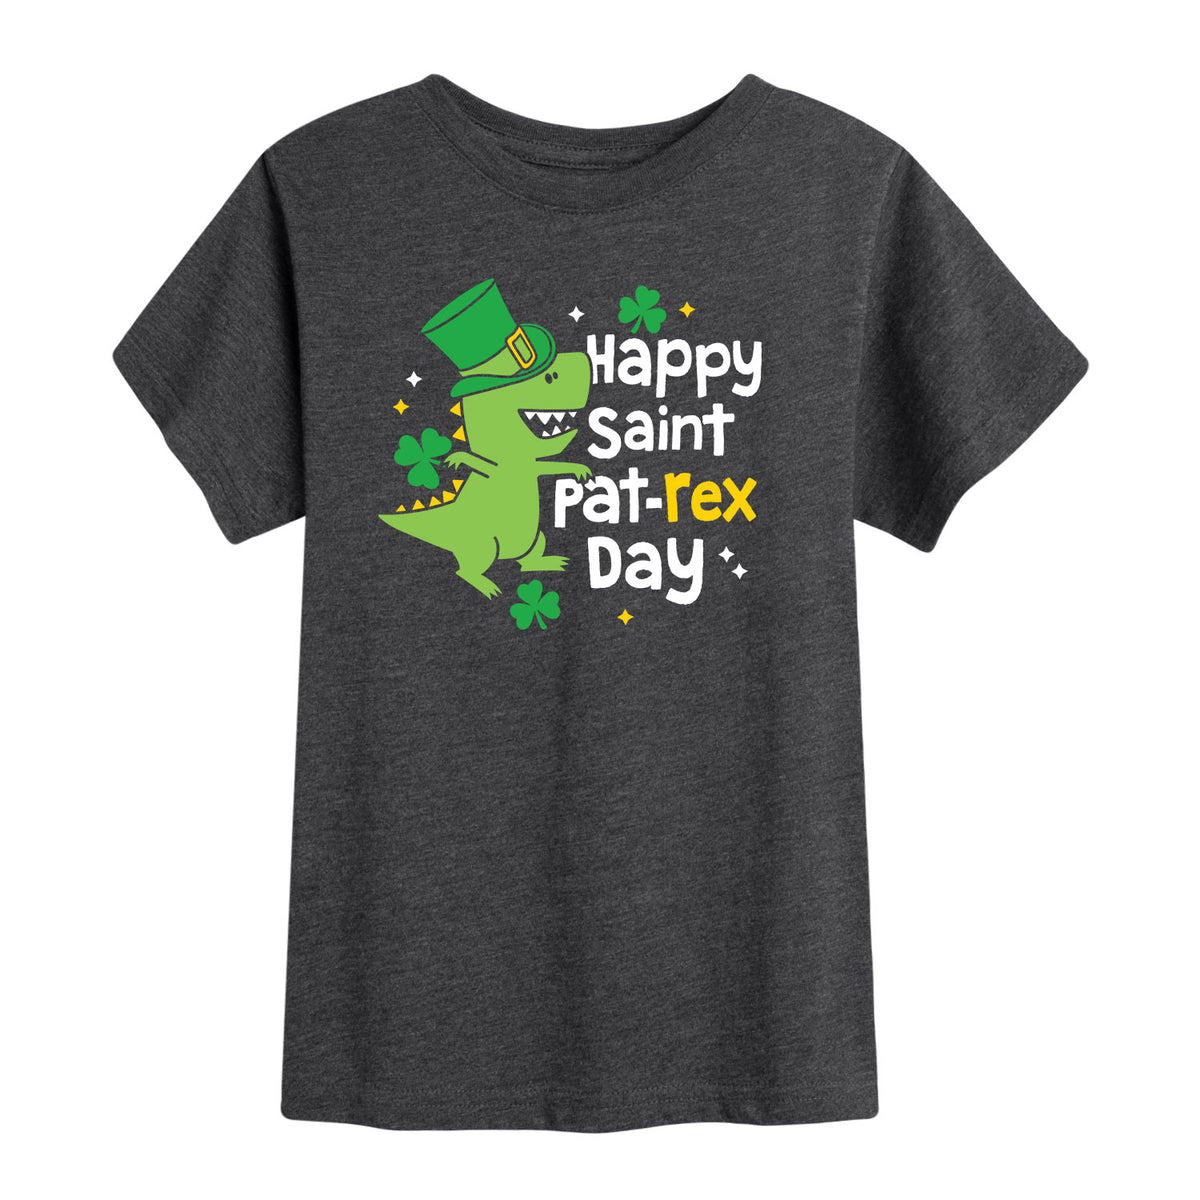 Happy St. Pat Rex Day - Toddler Short Sleeve T-Shirt